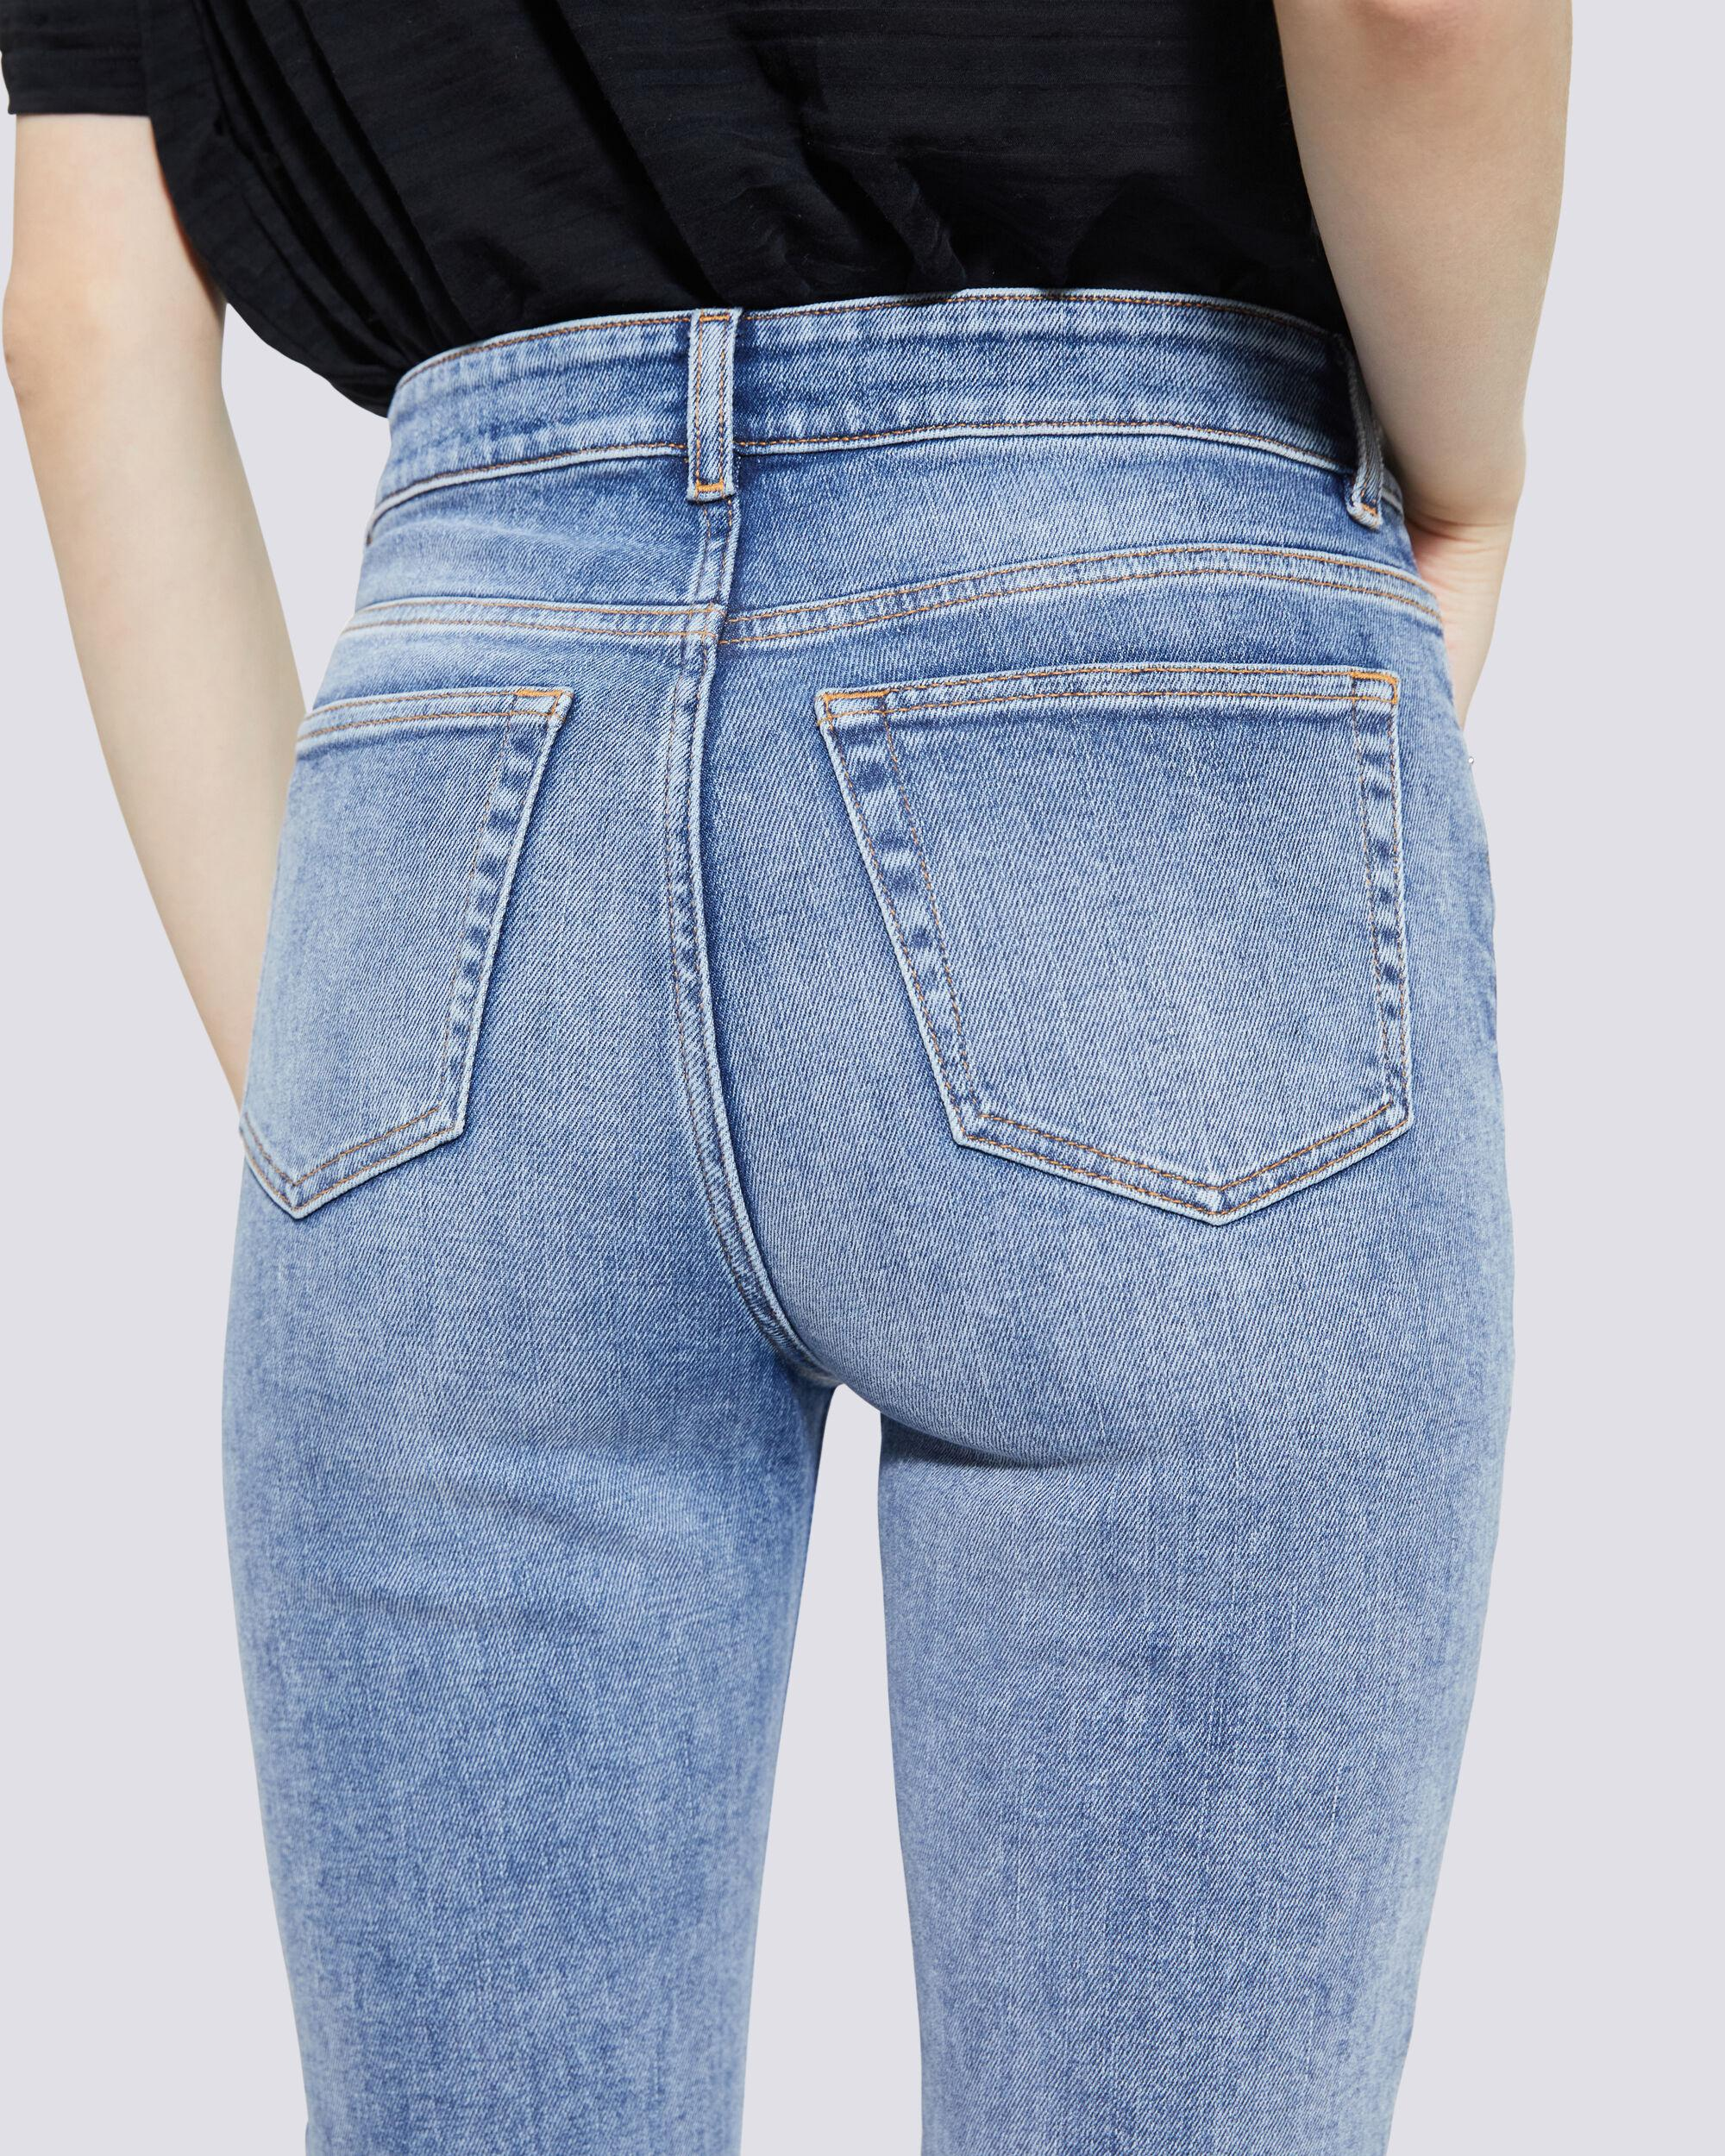 GALLOWAY MID RISE SKINNY ANKLE JEANS 3